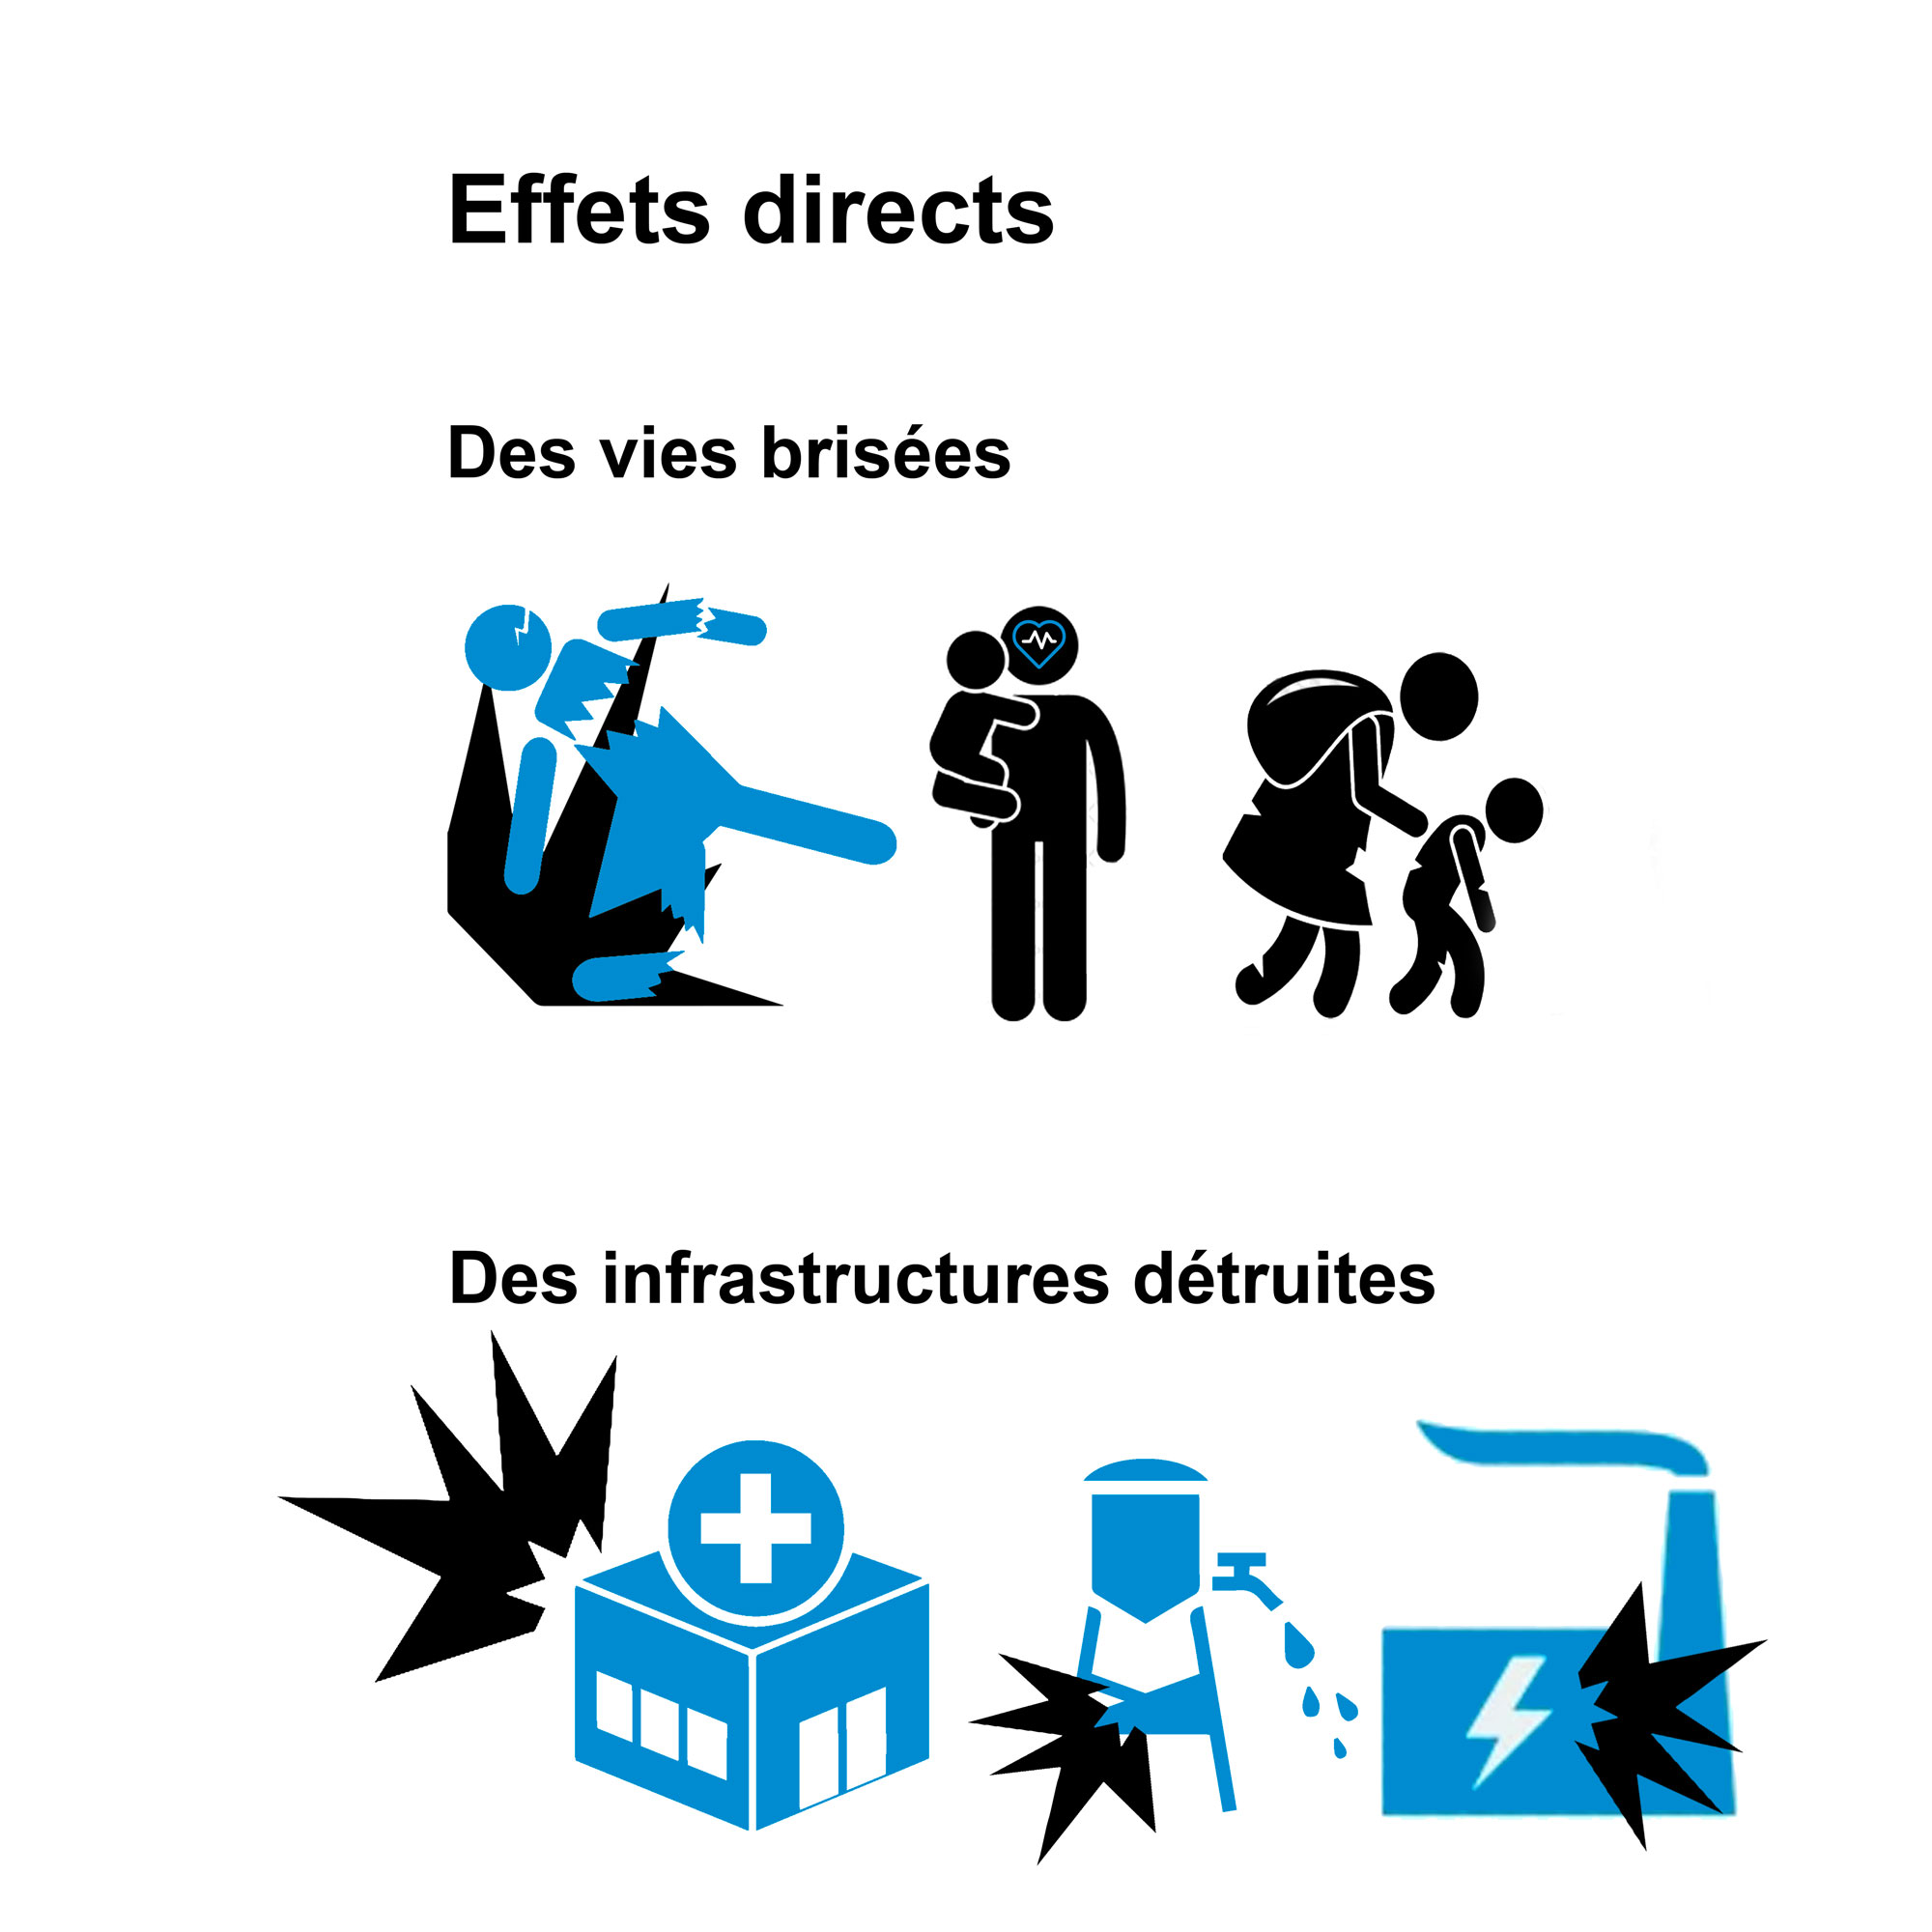 Effets direct